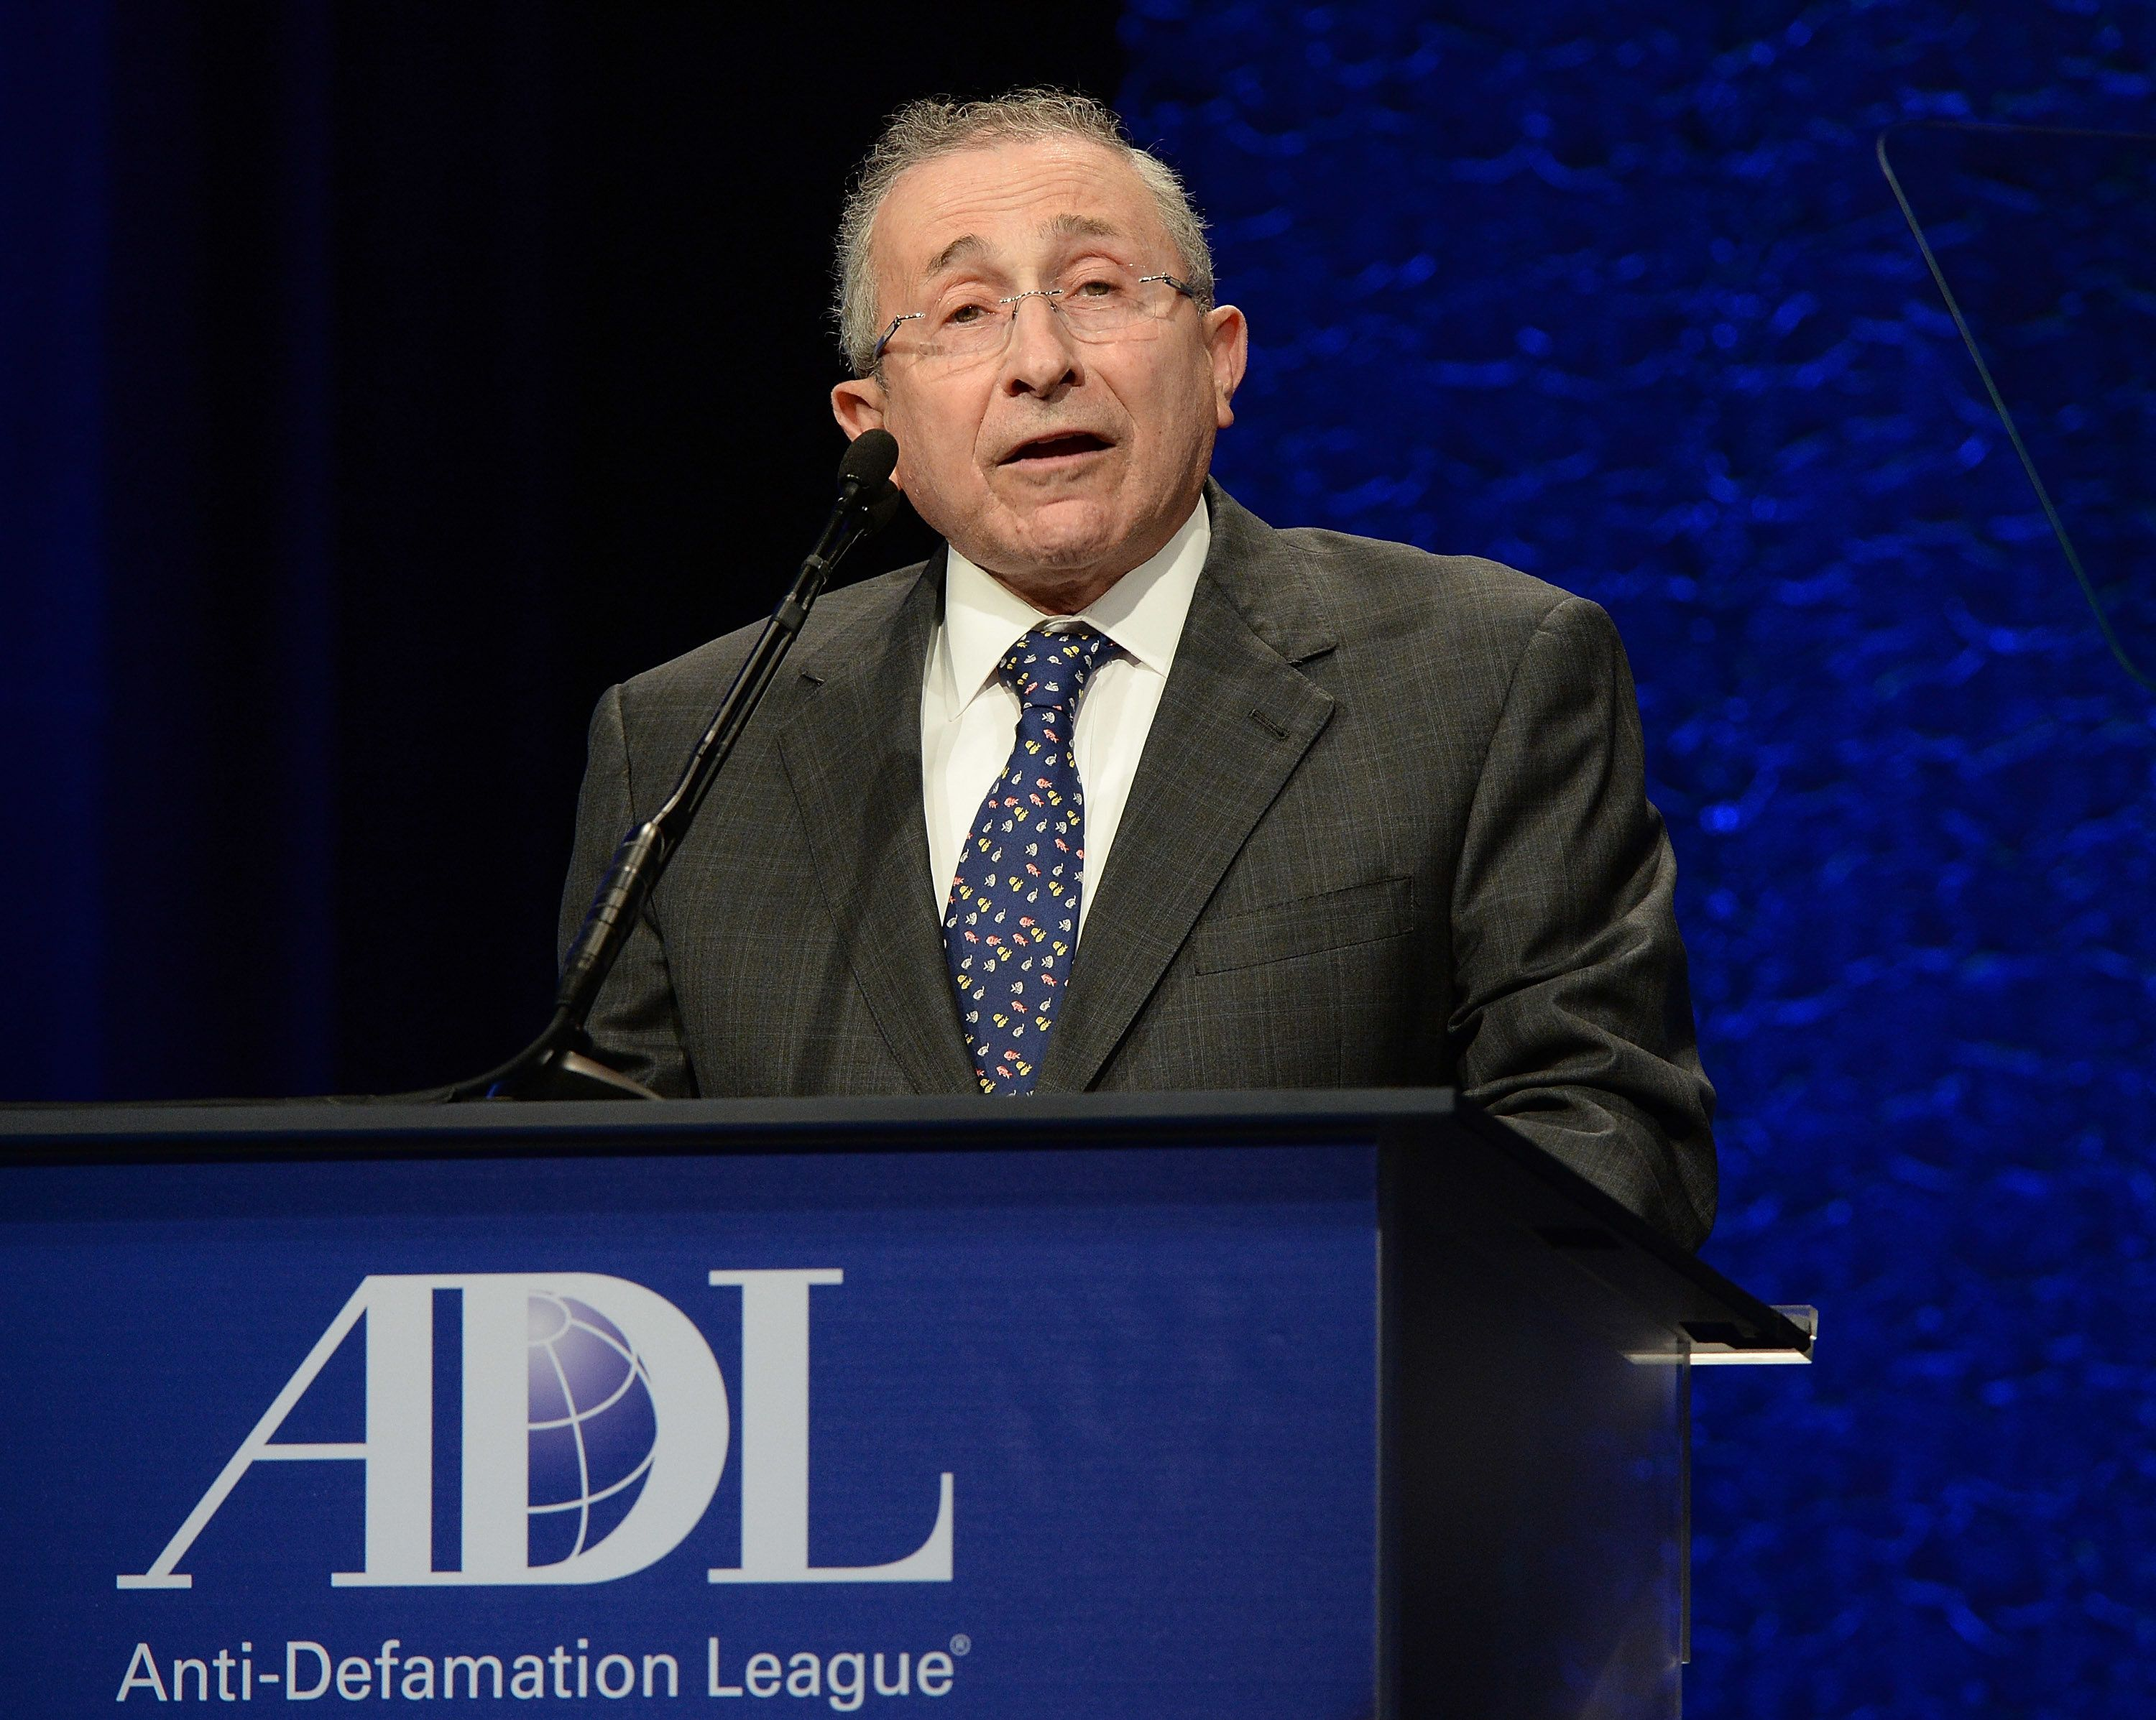 BEVERLY HILLS, CA - APRIL 20:  Simon Wiesenthal Center Dean and Founder Rabbi Marvin Hier presents onstage at the Anti-Defamation League's 2015 Entertainment Industry Dinner at The Beverly Hilton Hotel on April 20, 2015 in Beverly Hills, California.  (Photo by Michael Kovac/WireImage)